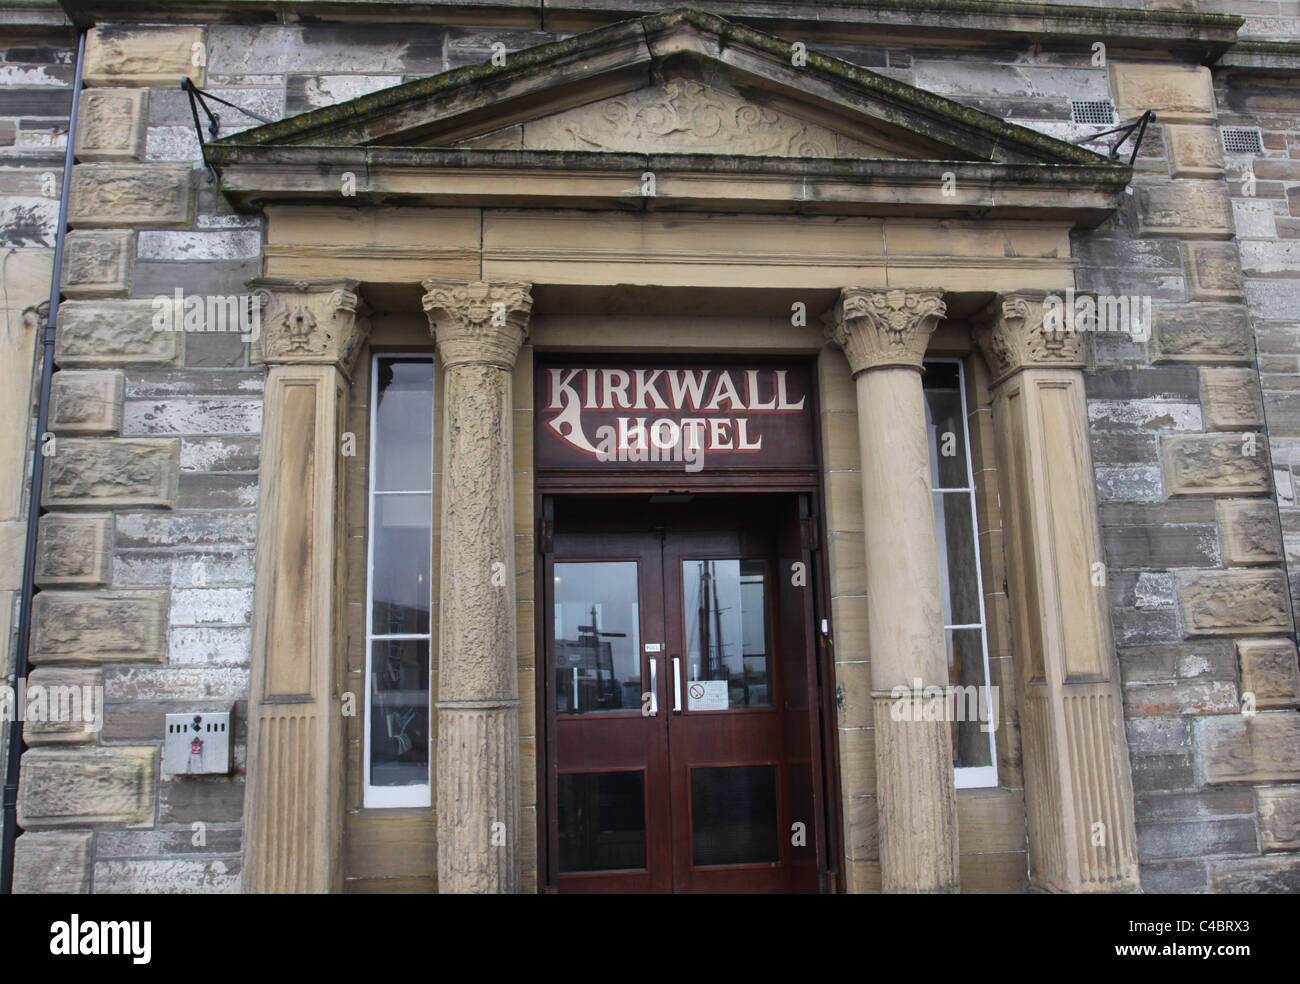 Entrance to Kirkwall Hotel Orkney Scotland May 2011 - Stock Image